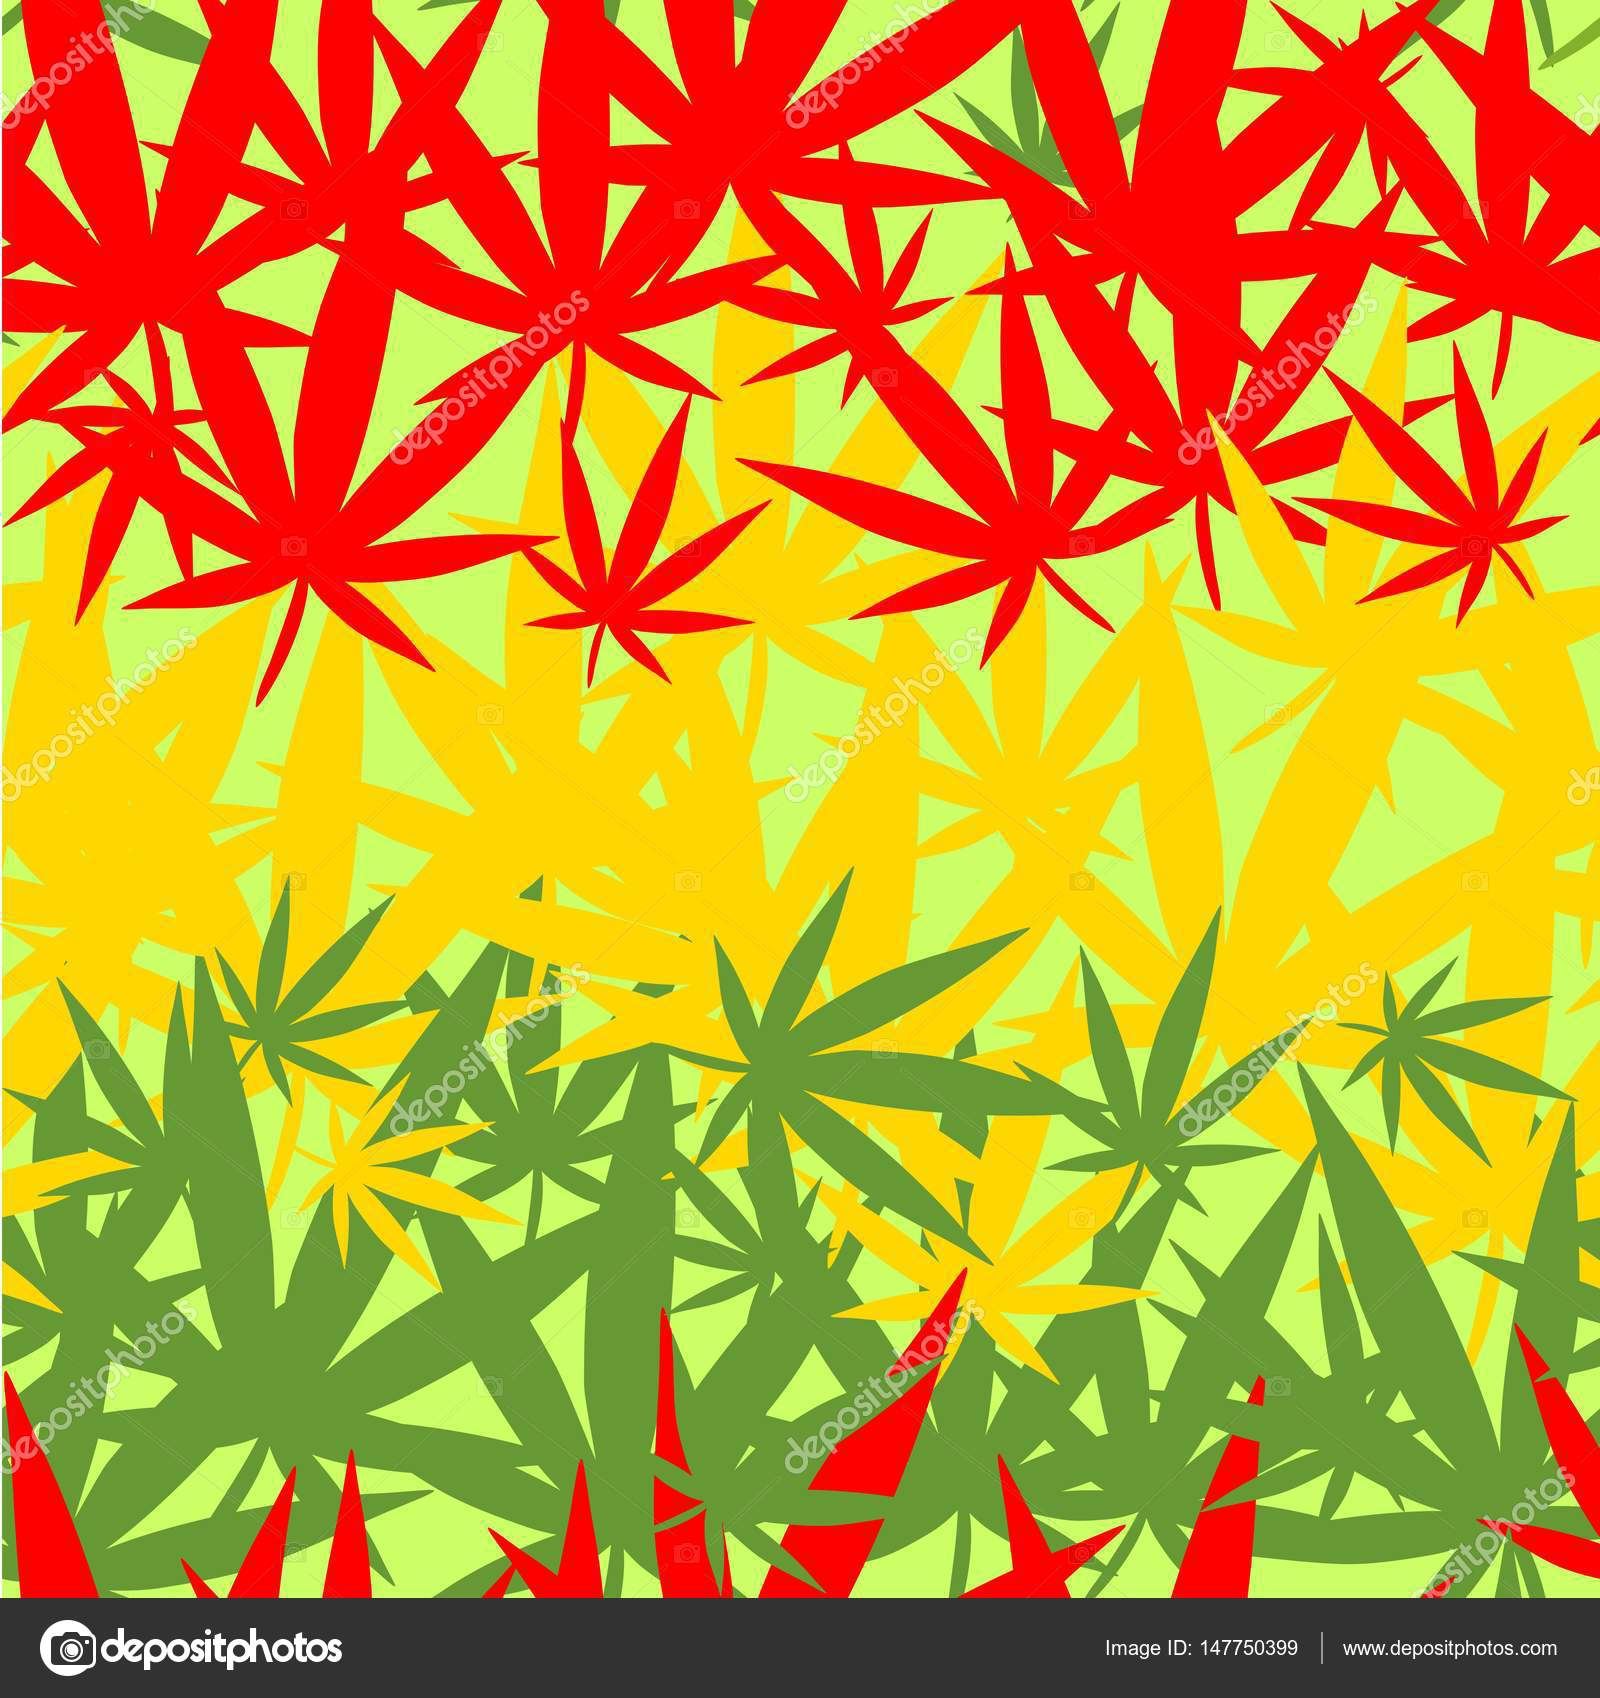 Wallpaper With Colorful Marijuana Leaves Stock Vector